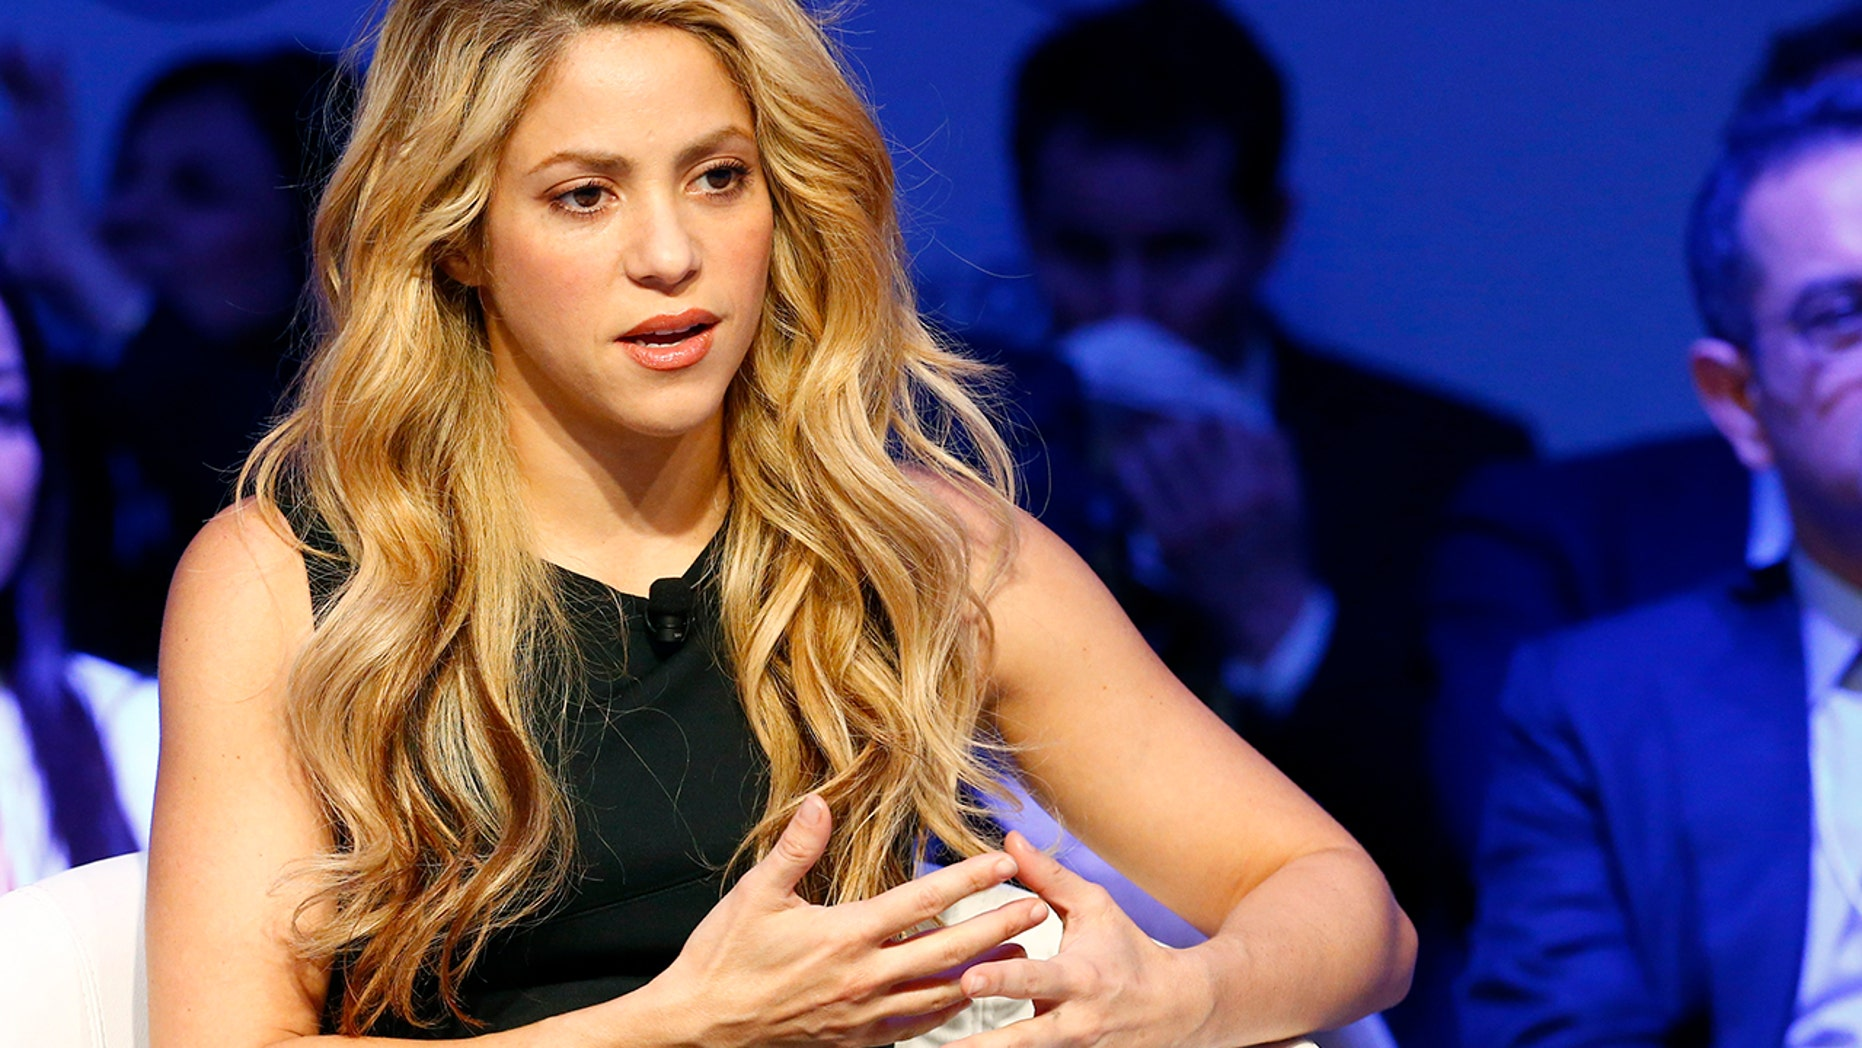 Shakira was under fire this week after fans pointed out a necklace on her fan website resembled a Nazi symbol.